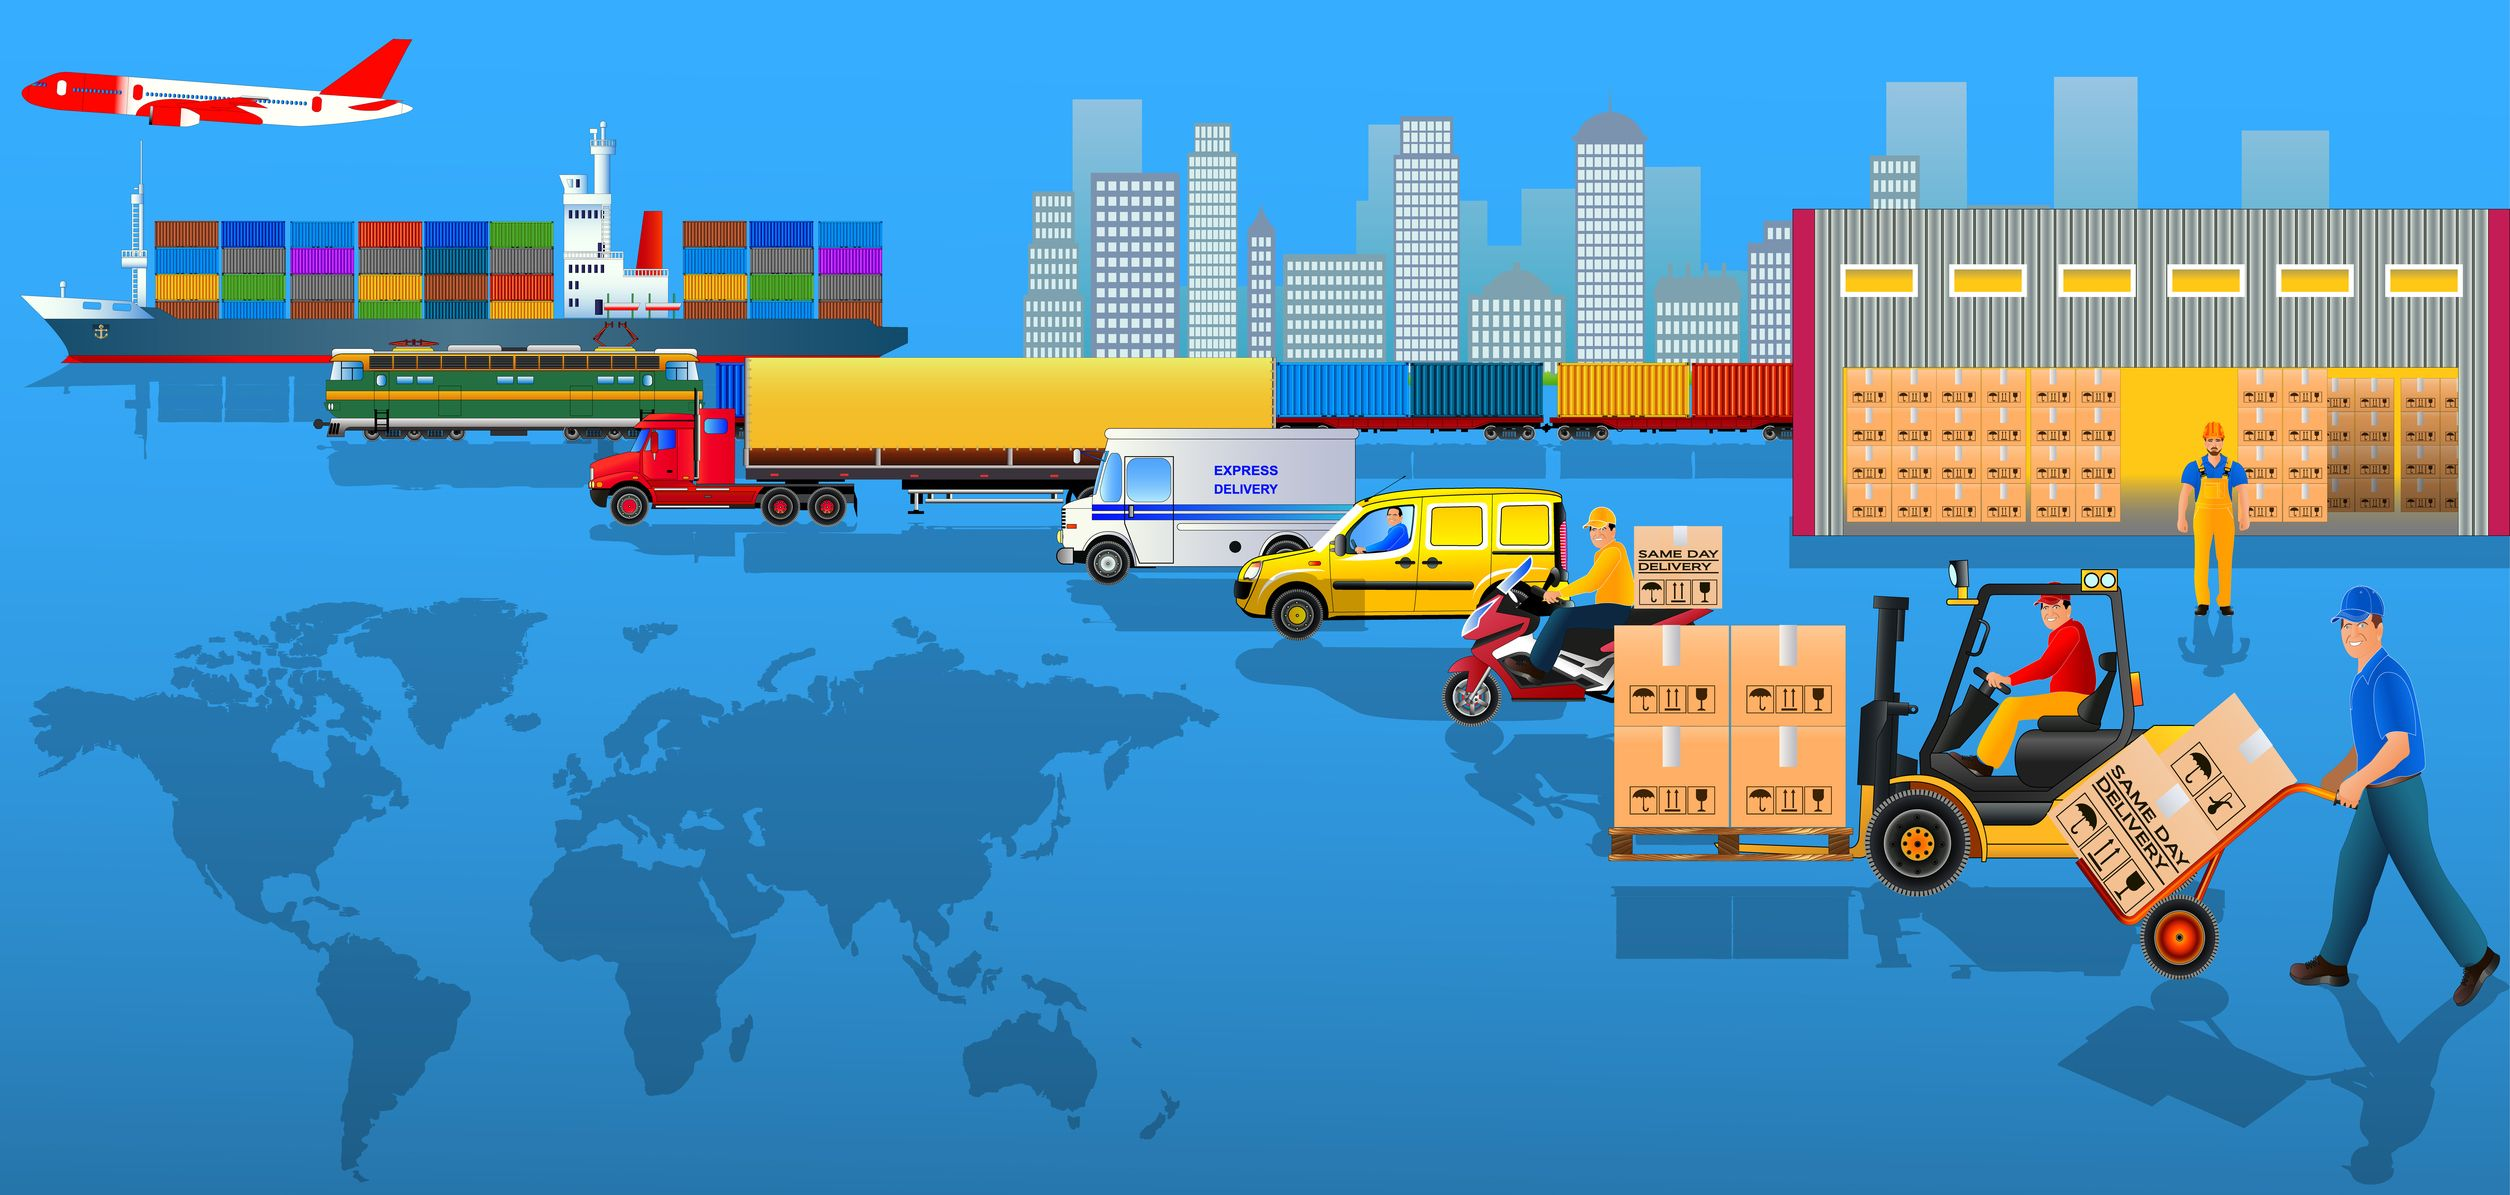 Globalization of logistics